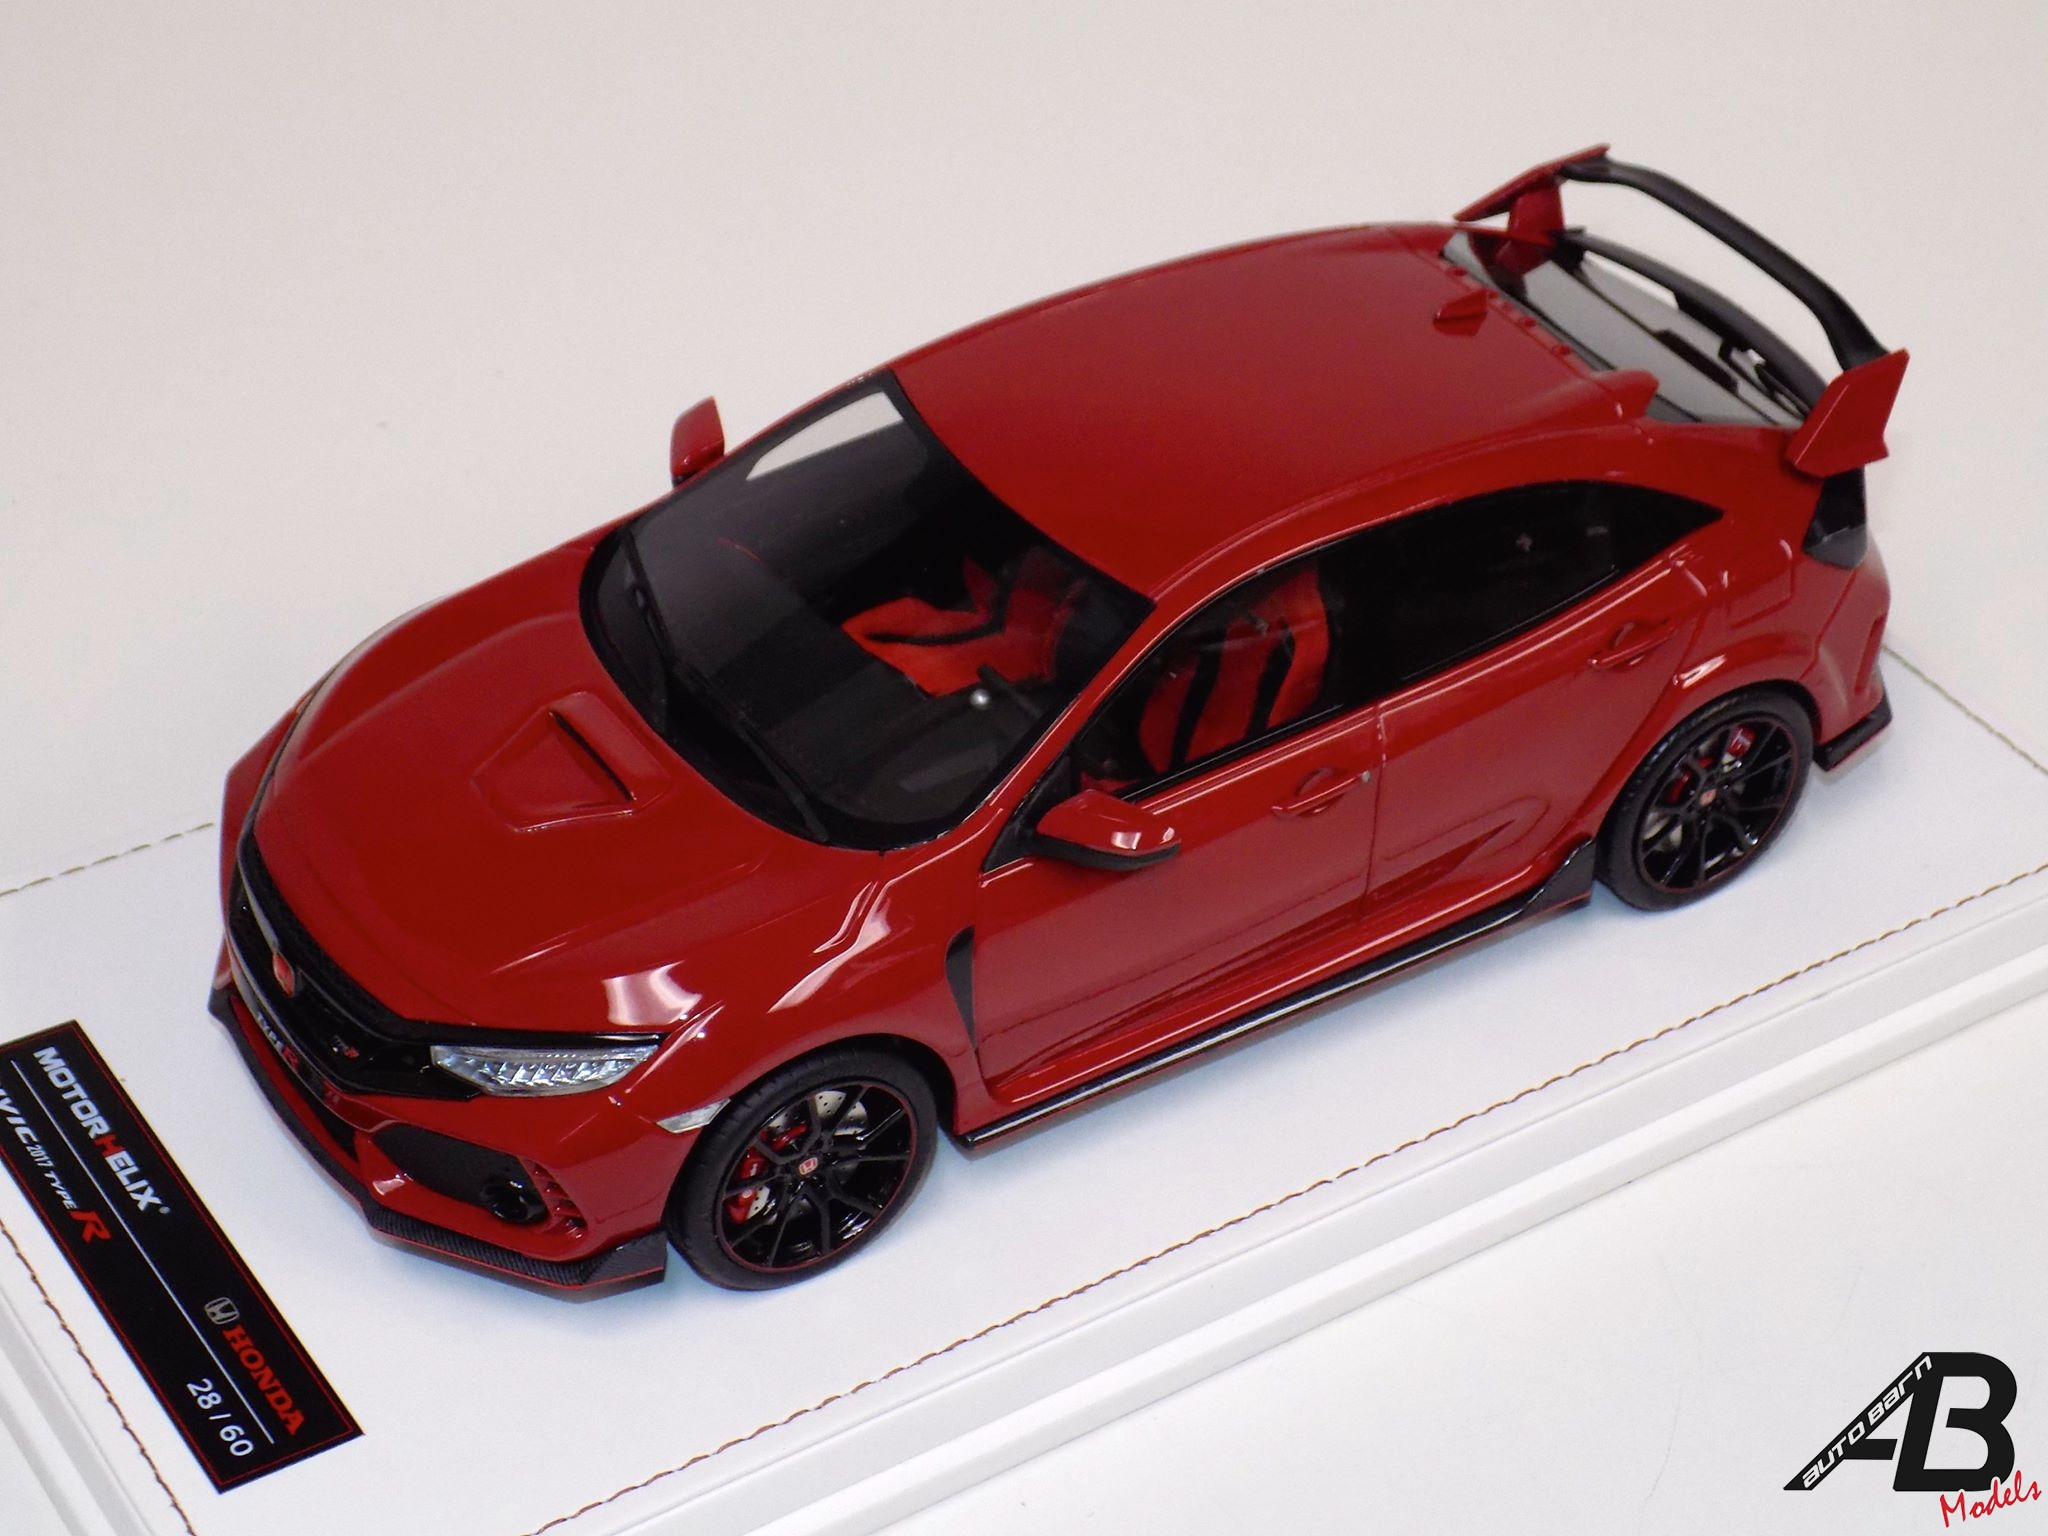 HONDA 2017 CIVIC TYPE R Rallye Red